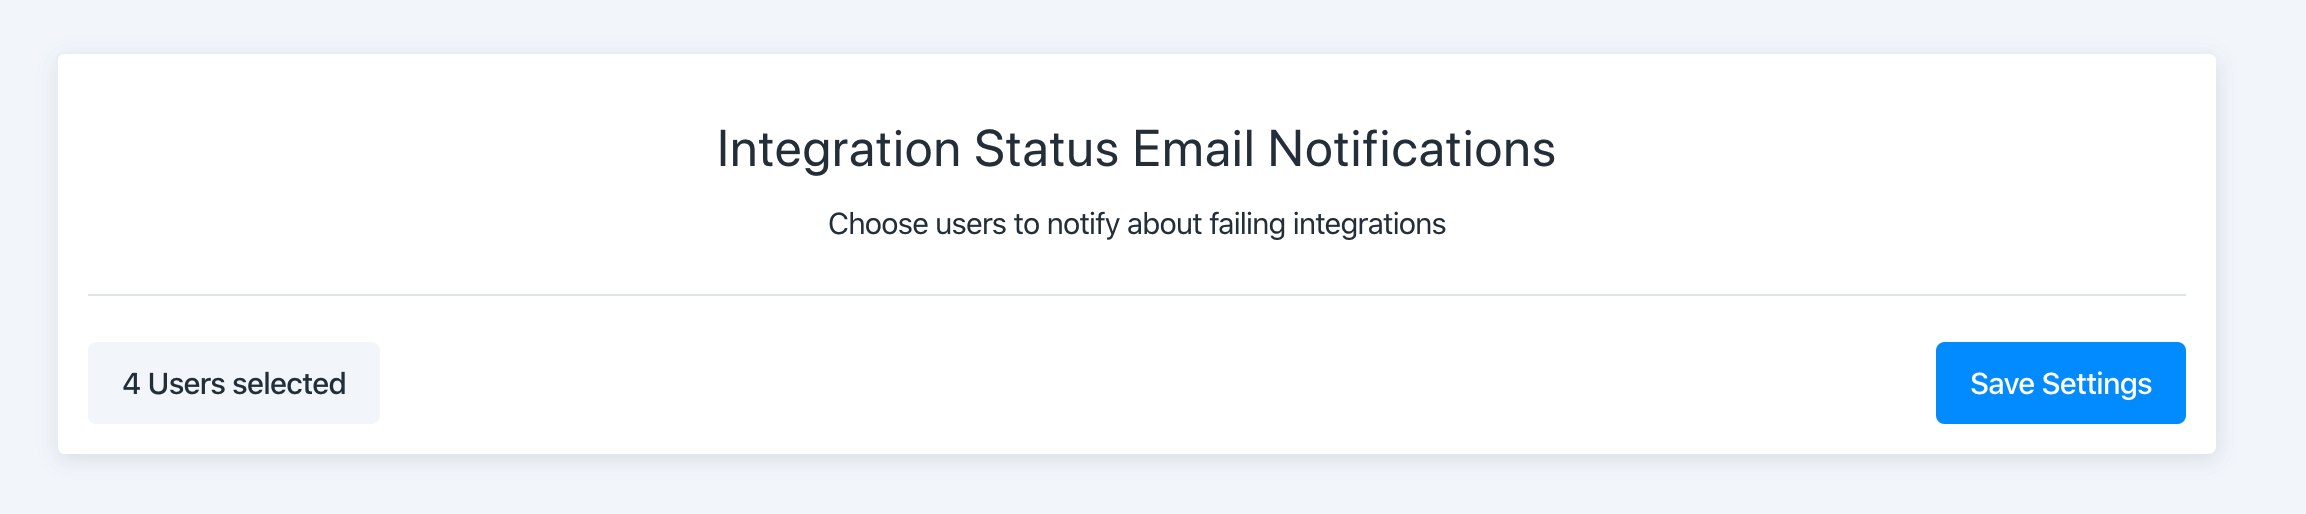 integration status email notifications